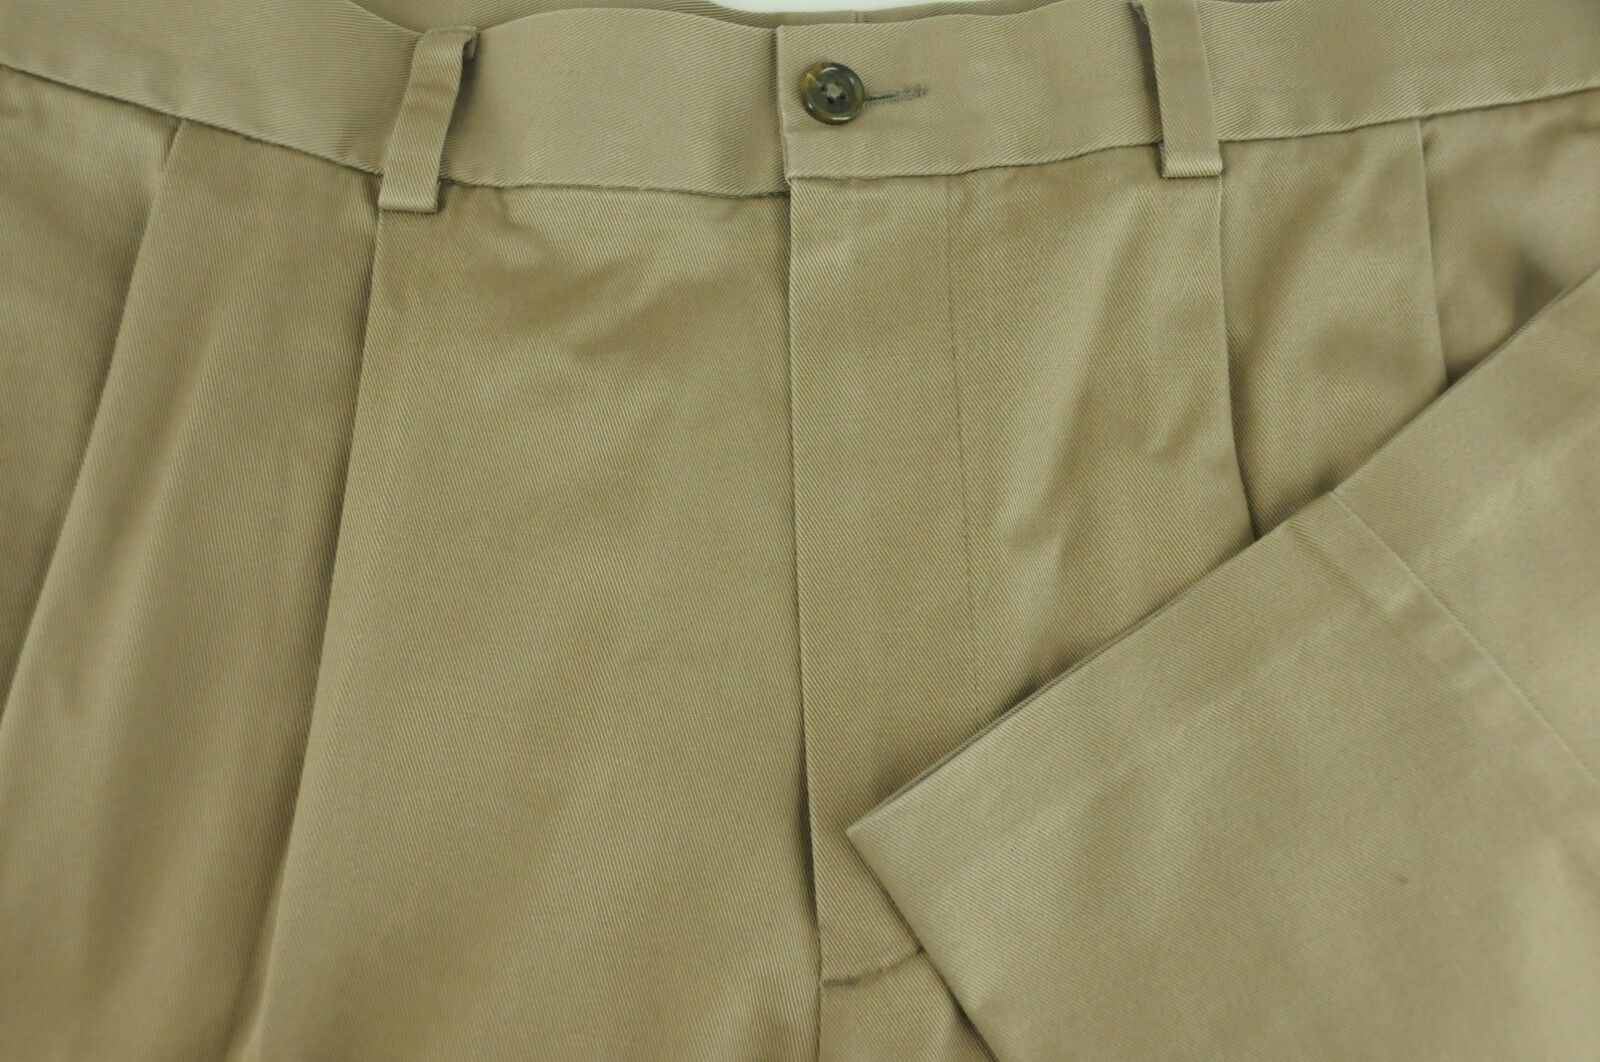 Nordstrom Men's Light Brown Cotton Tencel Pleated Casual Pants 35 x 32